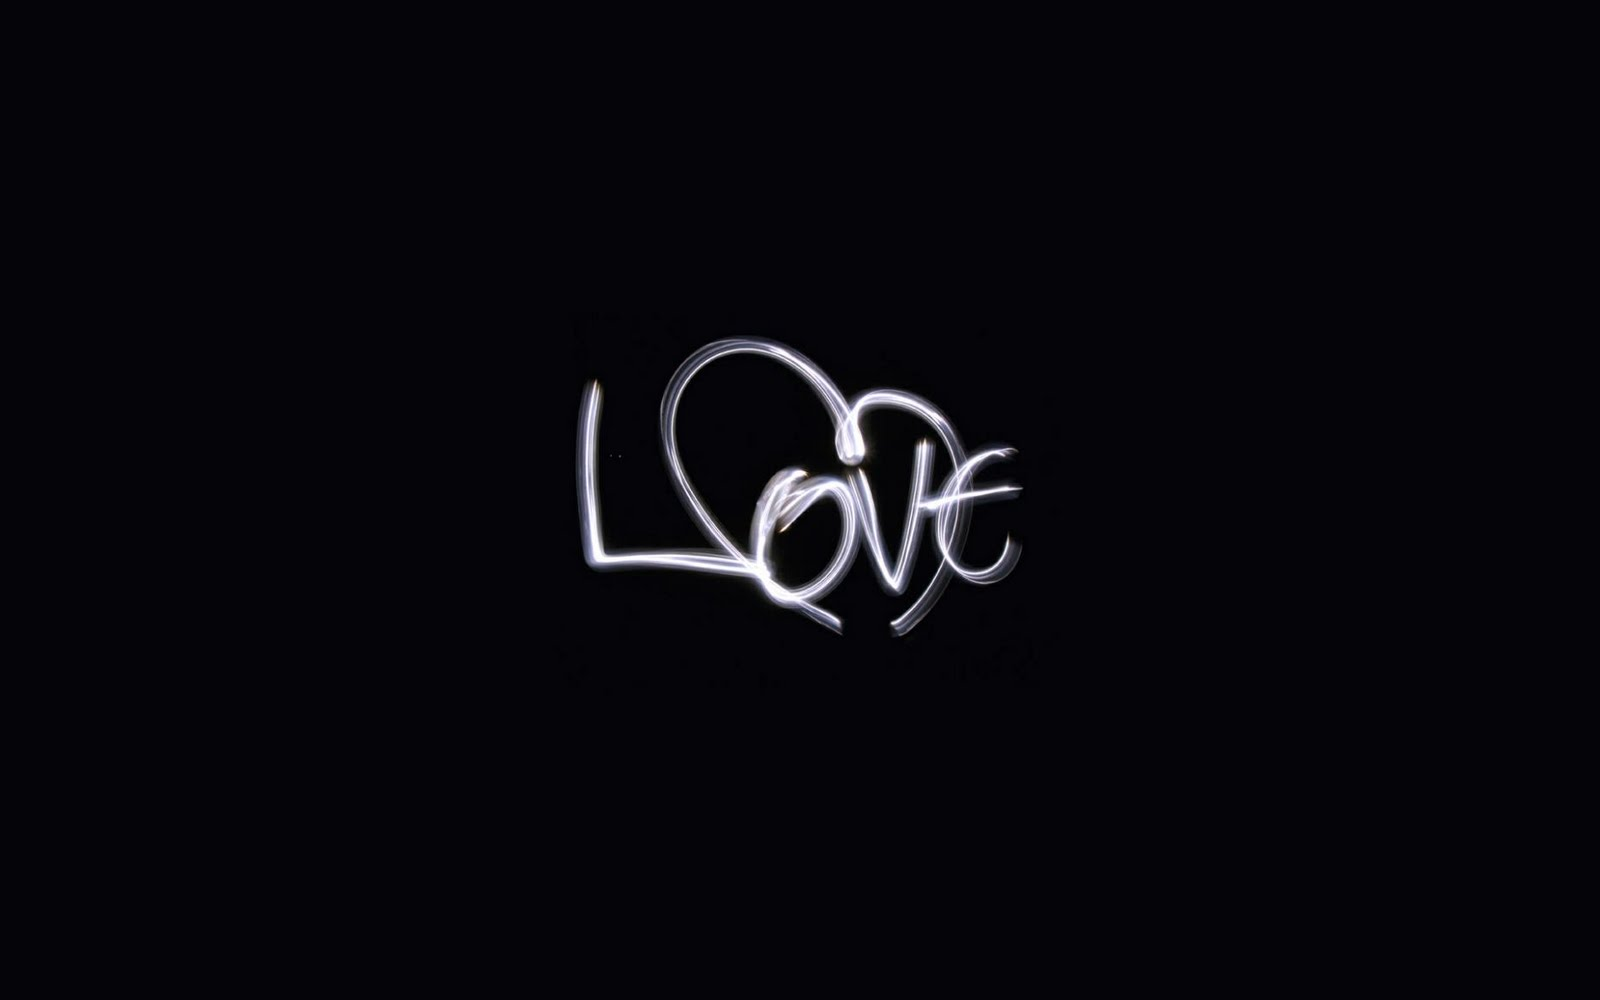 Love Wallpapers With Hd : TOP HD WALLPAPERS: LOVE HD WALLPAPER